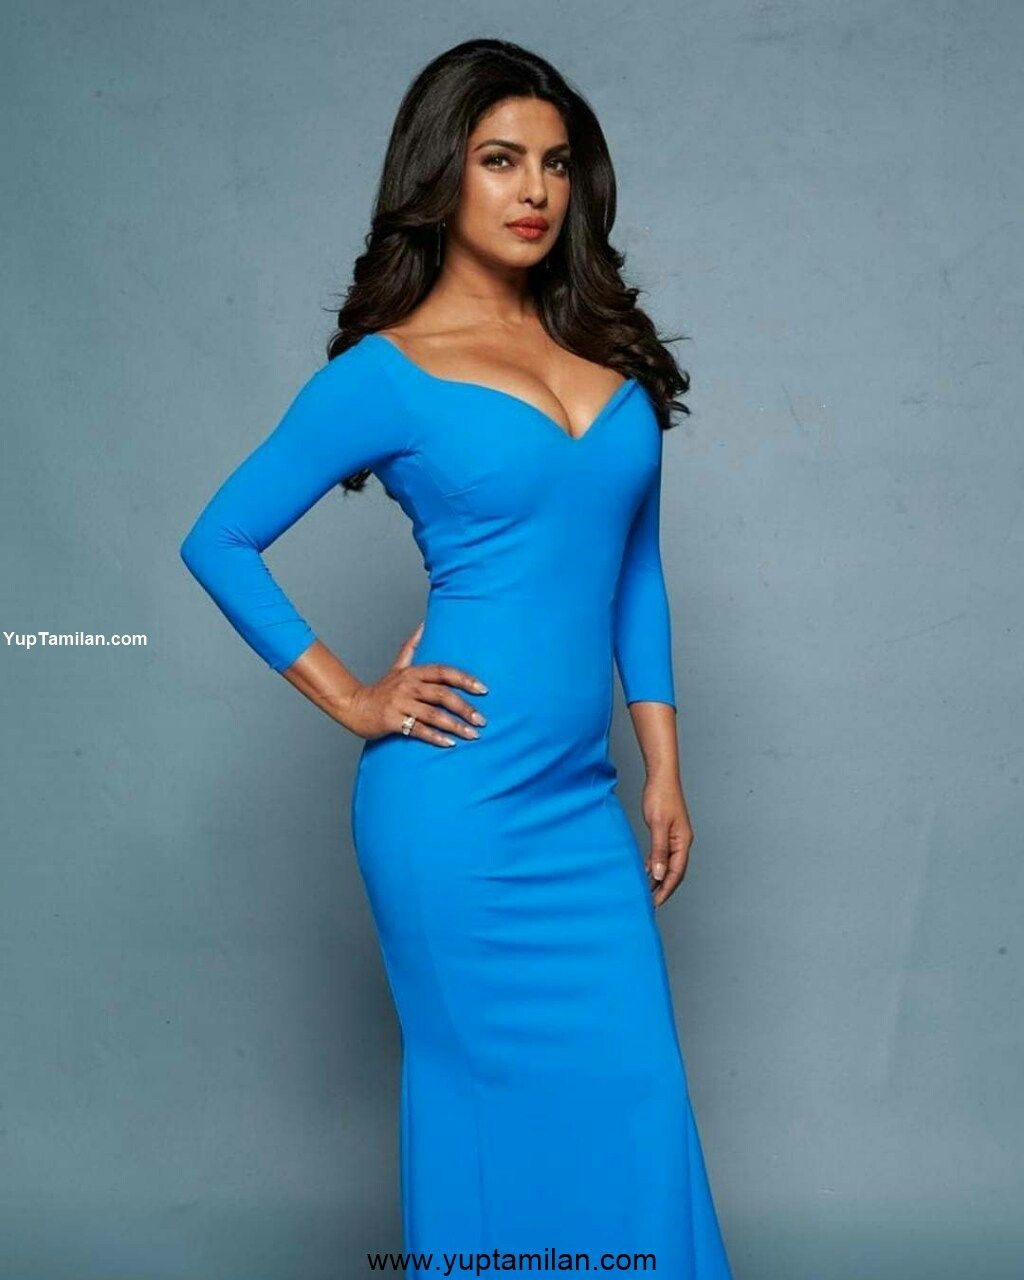 Priyanka Chopra Hot Photo Gallery-Sizzling Pictures In Hd -5604